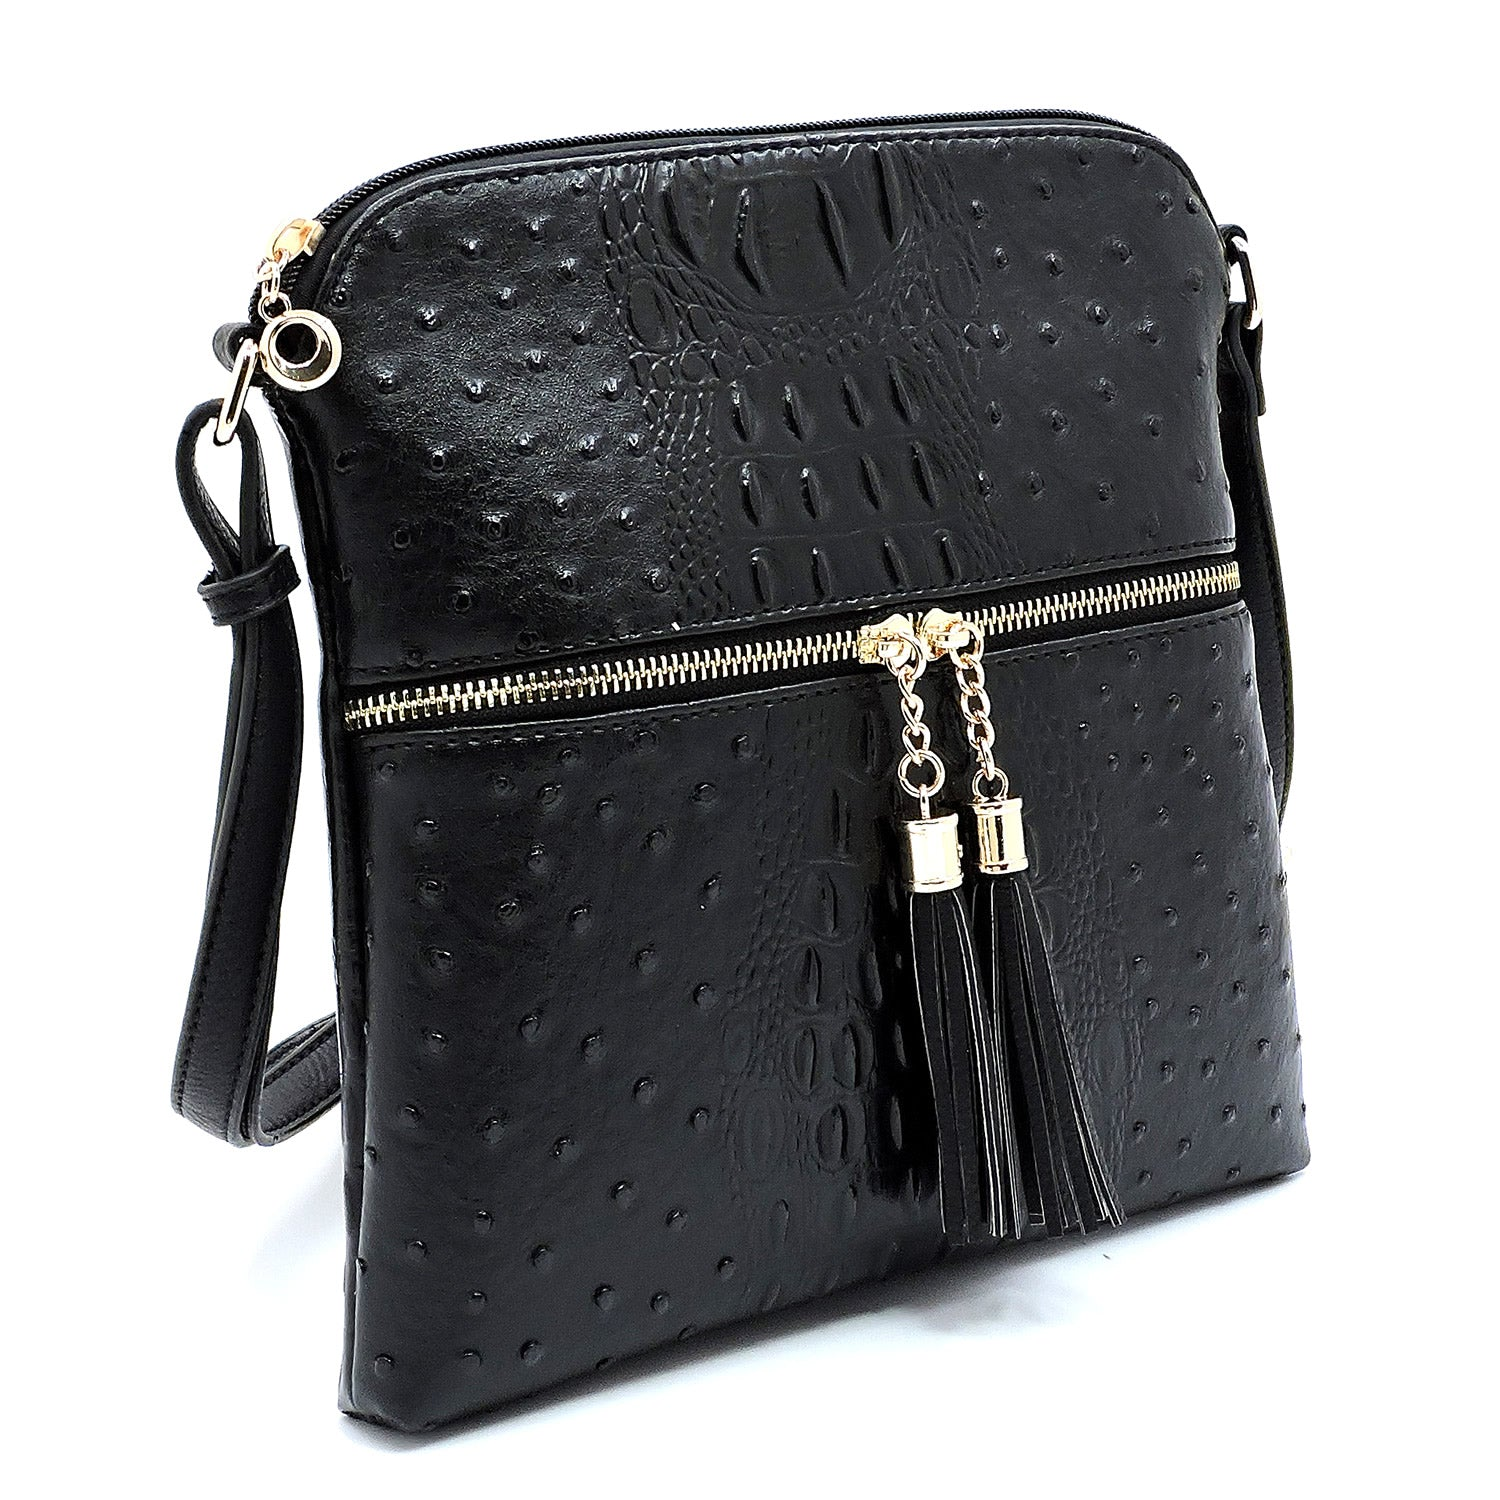 Ostrich Zip Tassel Messenger Black - Ace Handbag